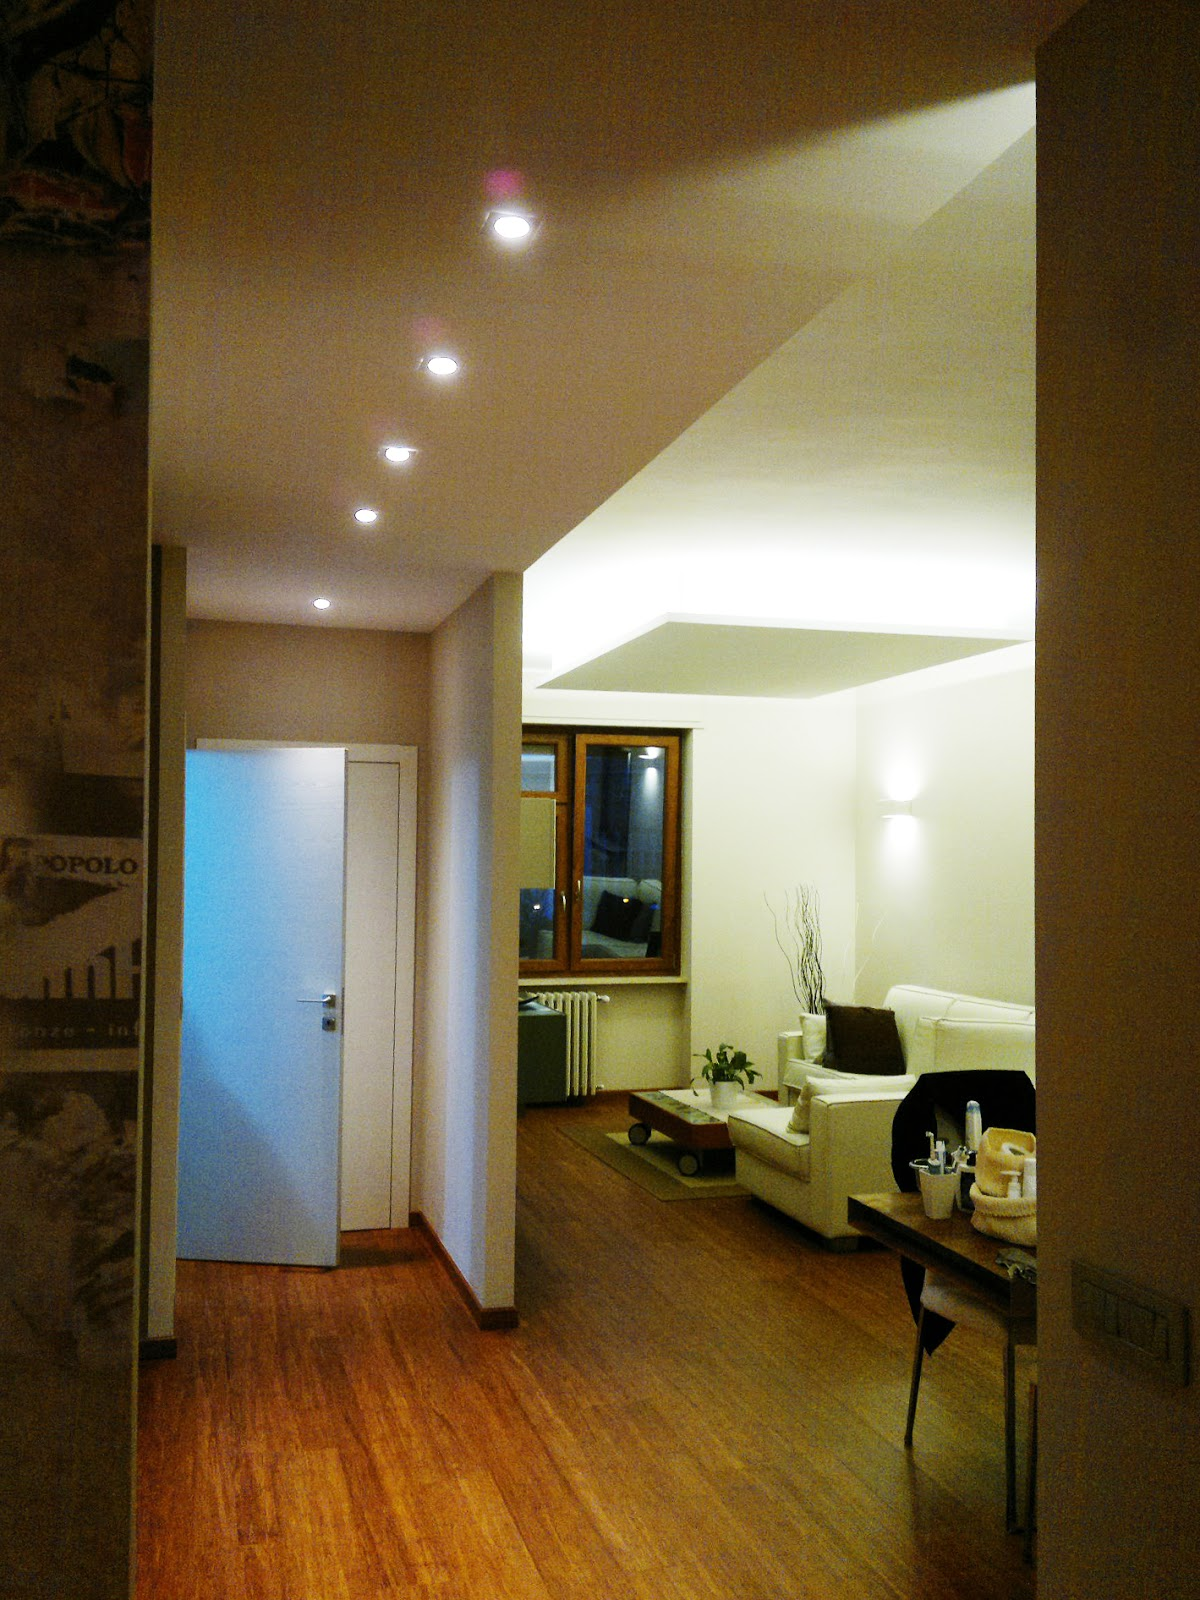 Illuminazione led casa illuminare a led gli ambienti con for Luci a led per interni casa